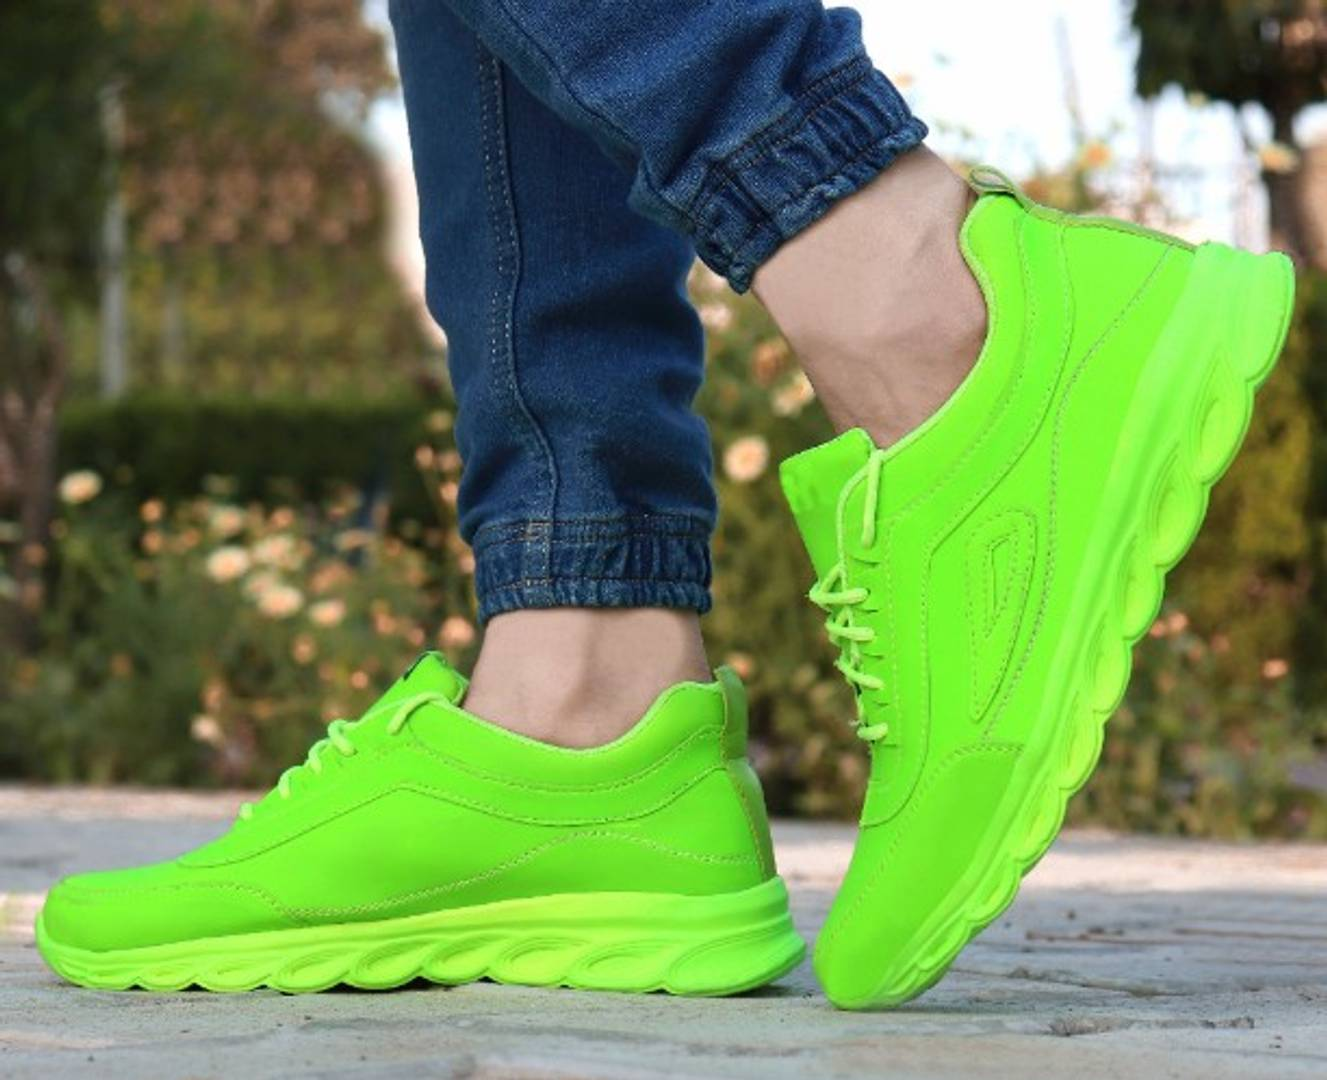 Elegant & Stylish Green Sports Shoes For Men